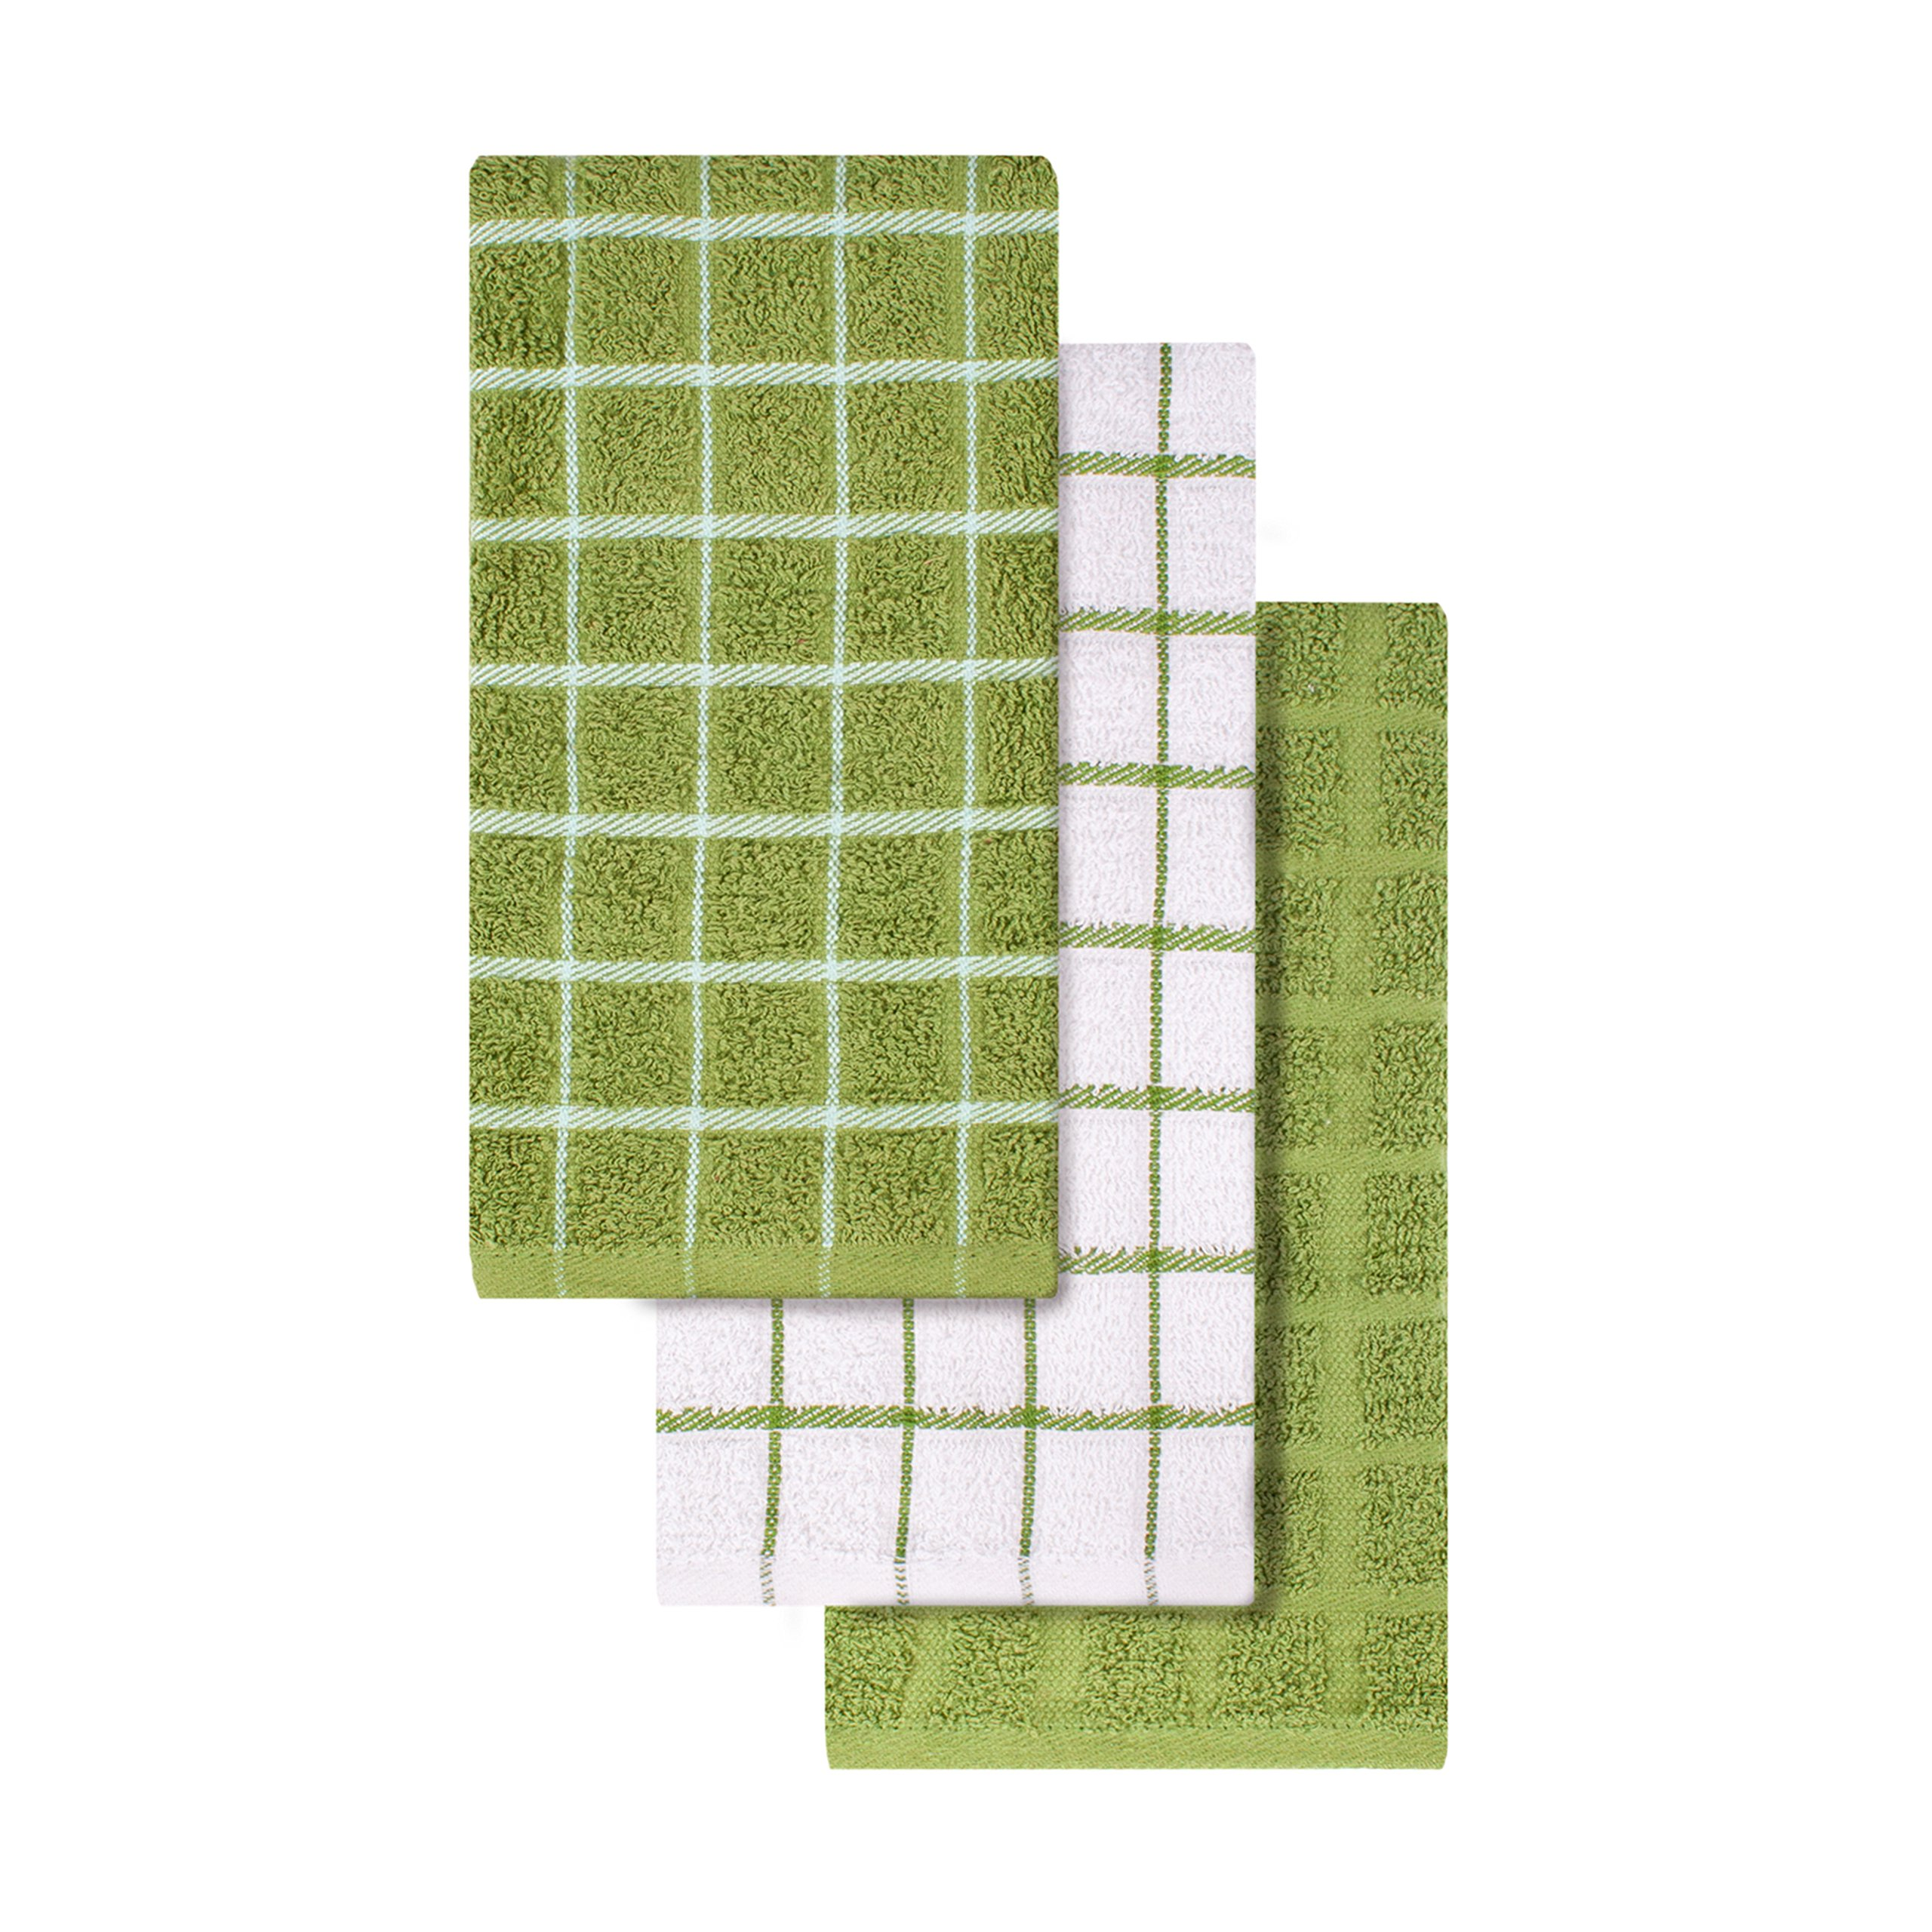 "Ritz 100% Cotton Terry Kitchen Dish Towels, Highly Absorbent, 25"" x 15"", 3-Pack, Cactus Green by Ritz (Image #3)"